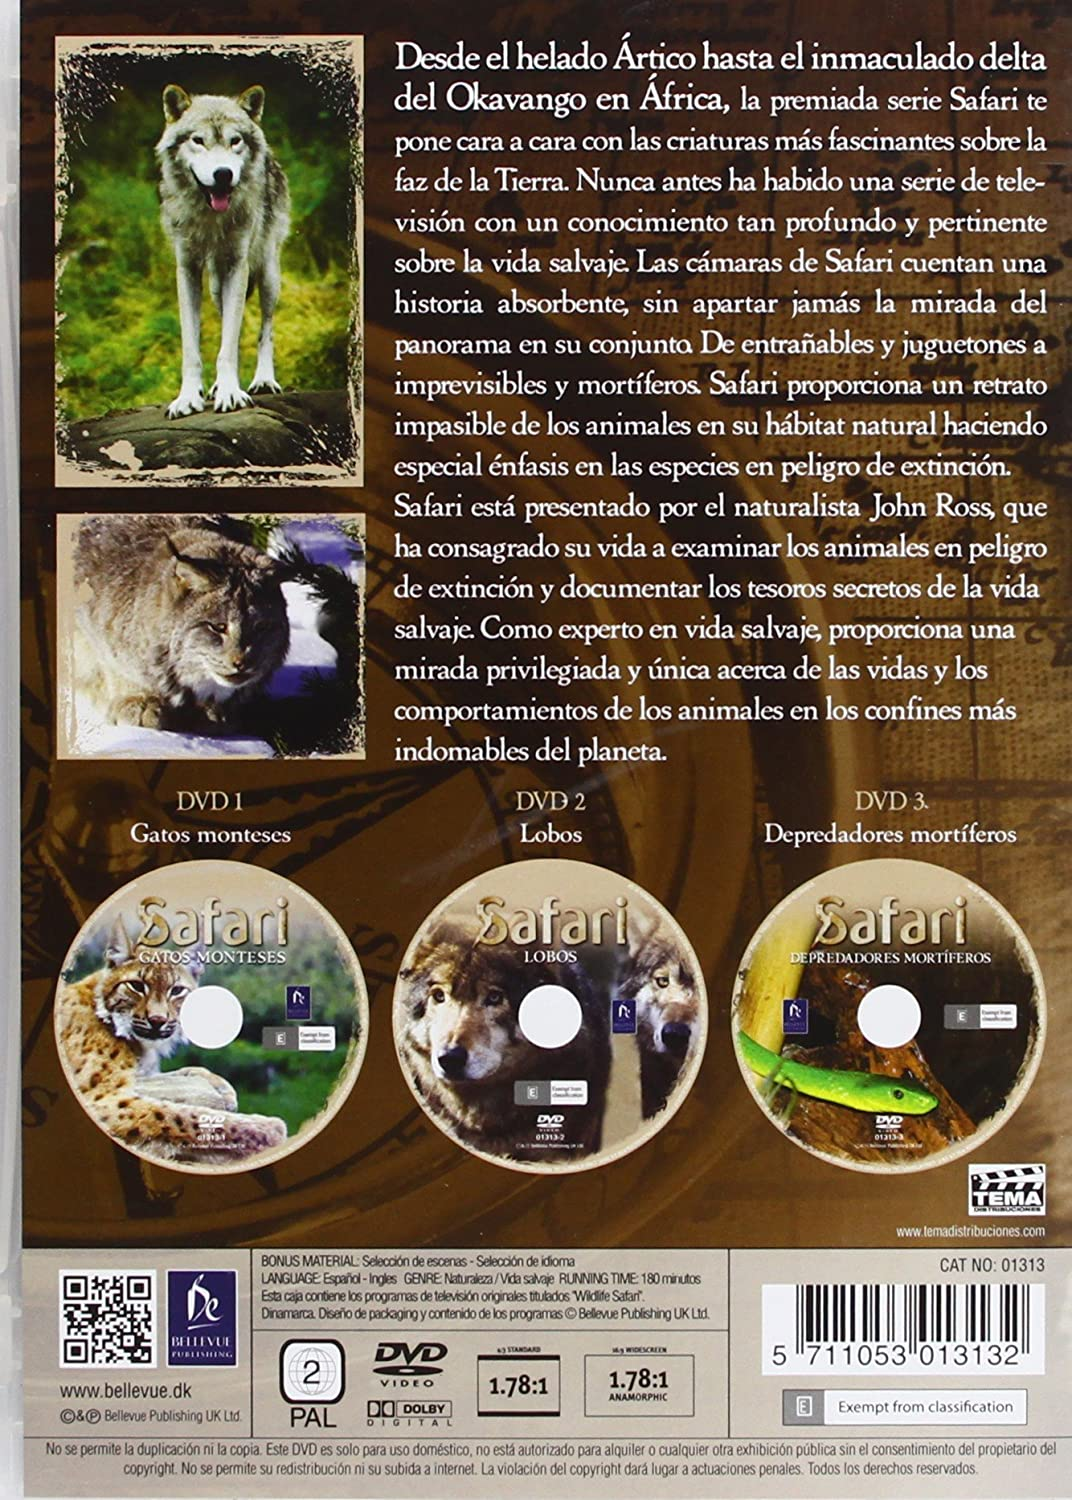 Amazon.com: Pack Safari 2: Gatos Monteses + Lobos + Depredadores Mortíferos (Import Movie) (European Format - Zone 2) V: Movies & TV